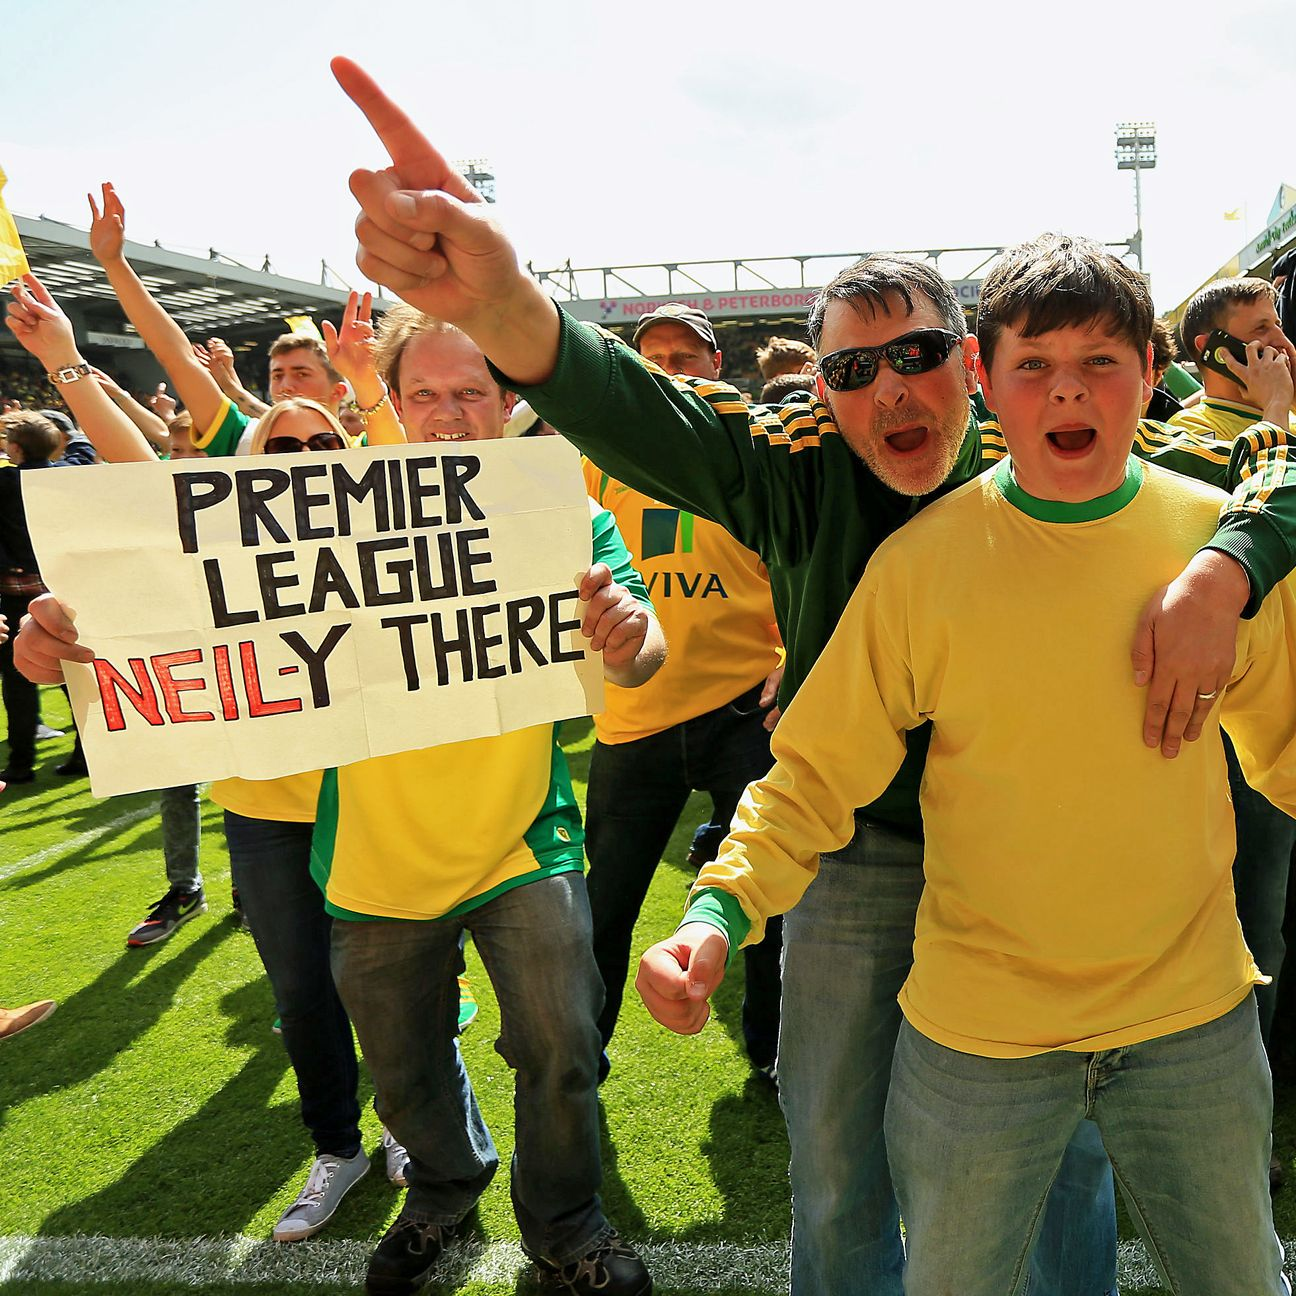 Norwich City fans will be hoping for a quick return to the riches of the Premier League with a playoff final win versus Middlesbrough.